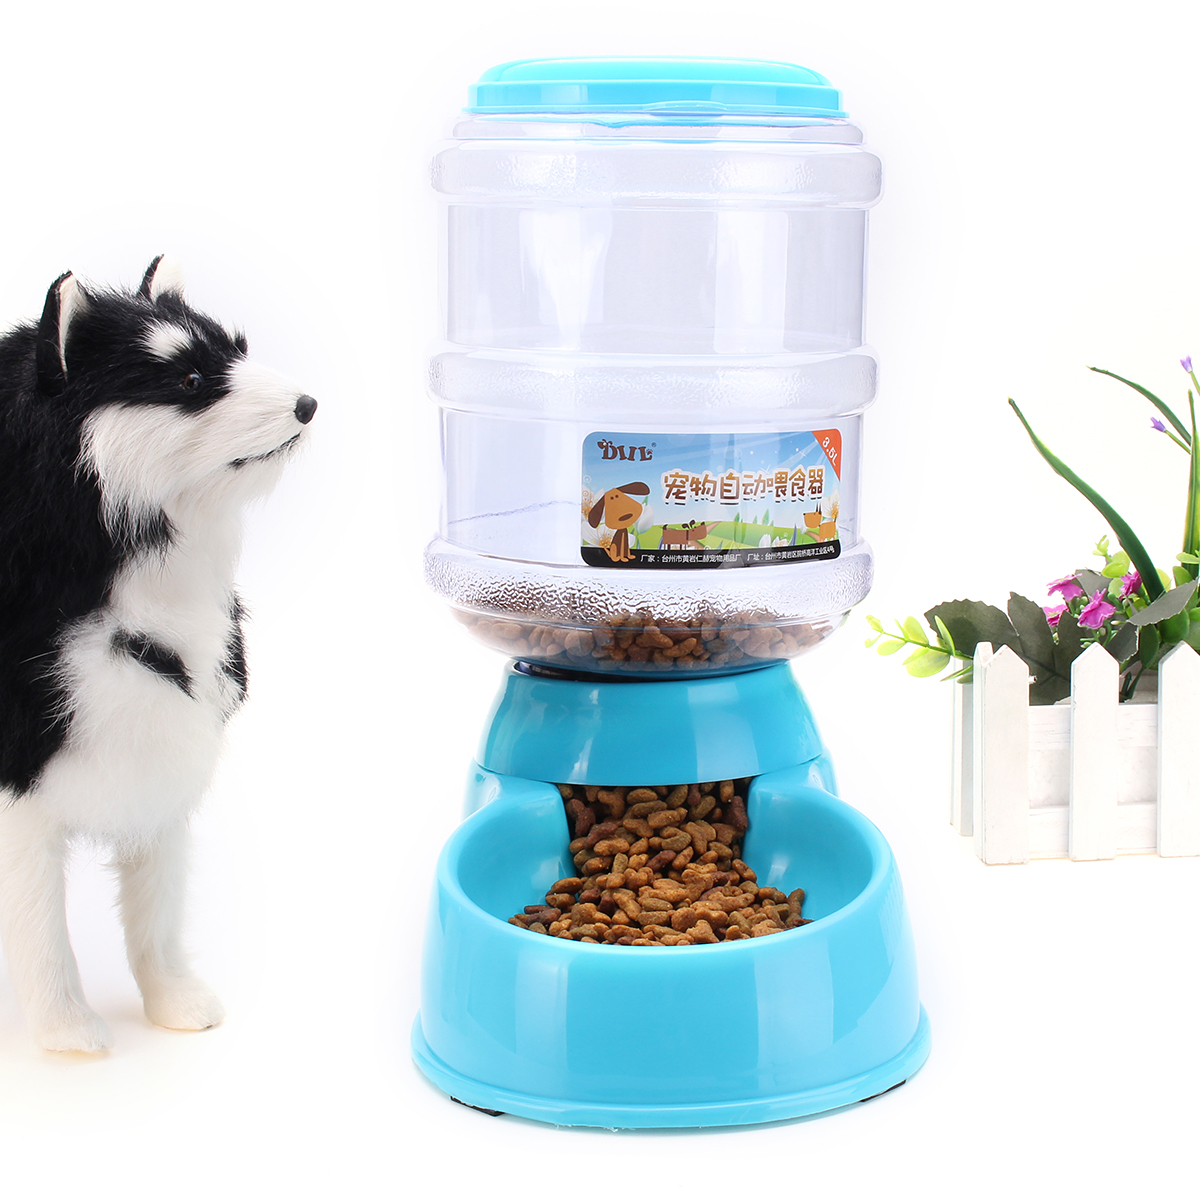 3.5L Large Automatic Pet Feeder Supplies Dog Cats Food Dispenser Feeding Bowl